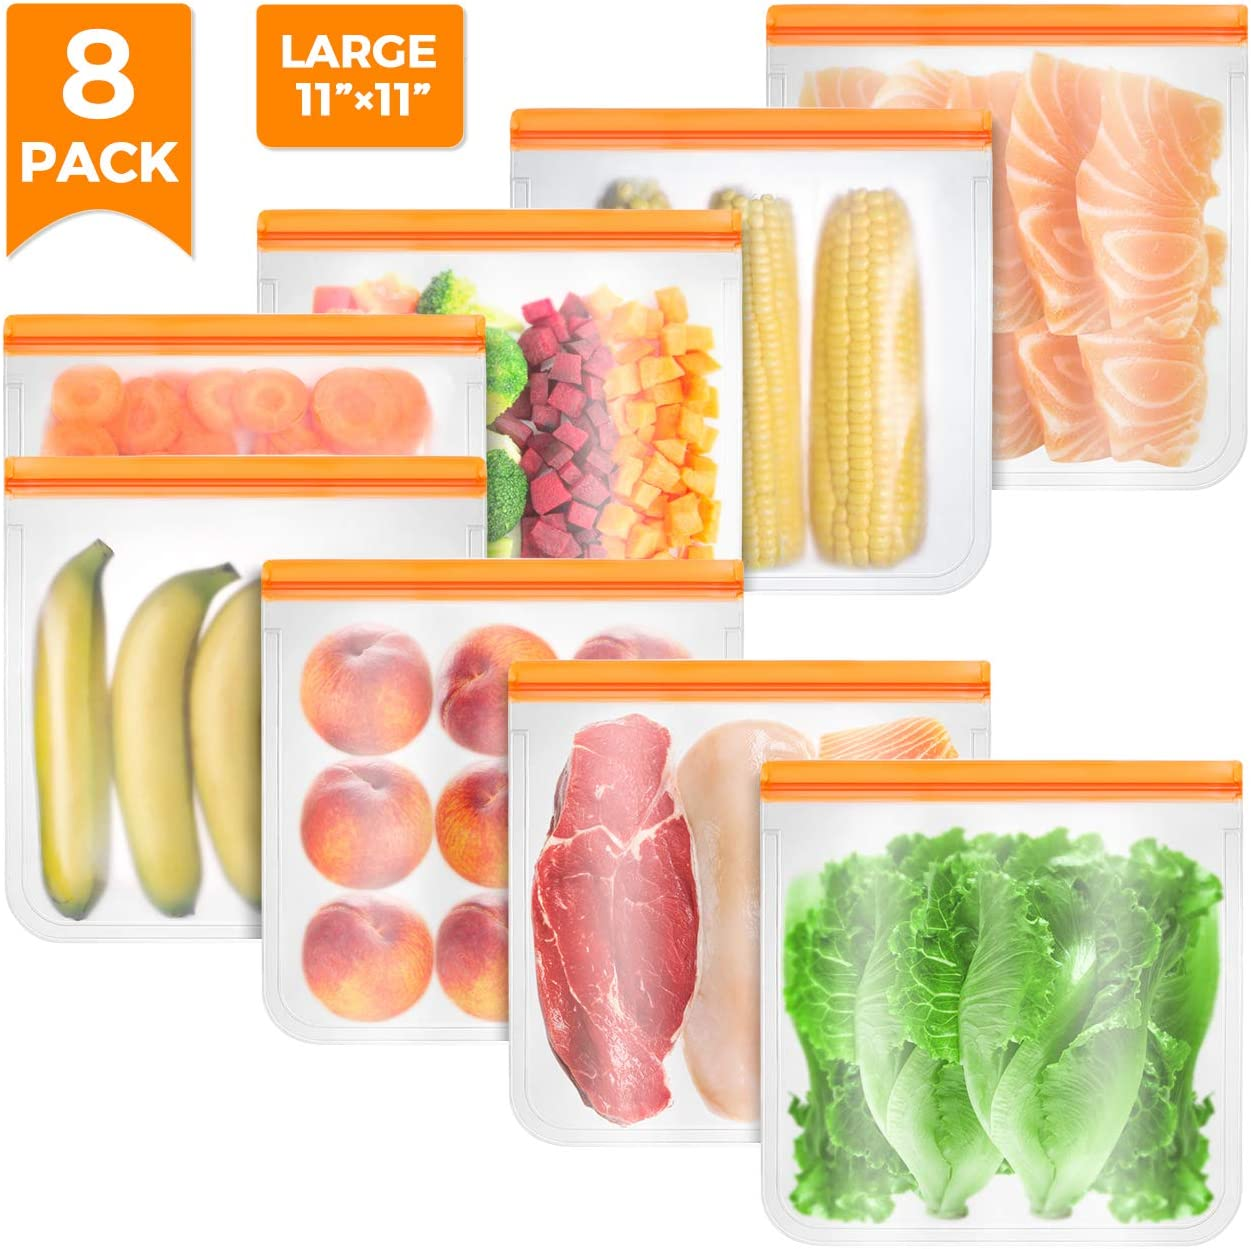 8 PACK Reusable Food Storage Bags - LARMHOI Leakproof Freezer Ziplock Bags for Marinate Meats, Vegetables, Fruit, Cereal, Sandwich, Snack, Travel Items, Meal Prep, Home Organization